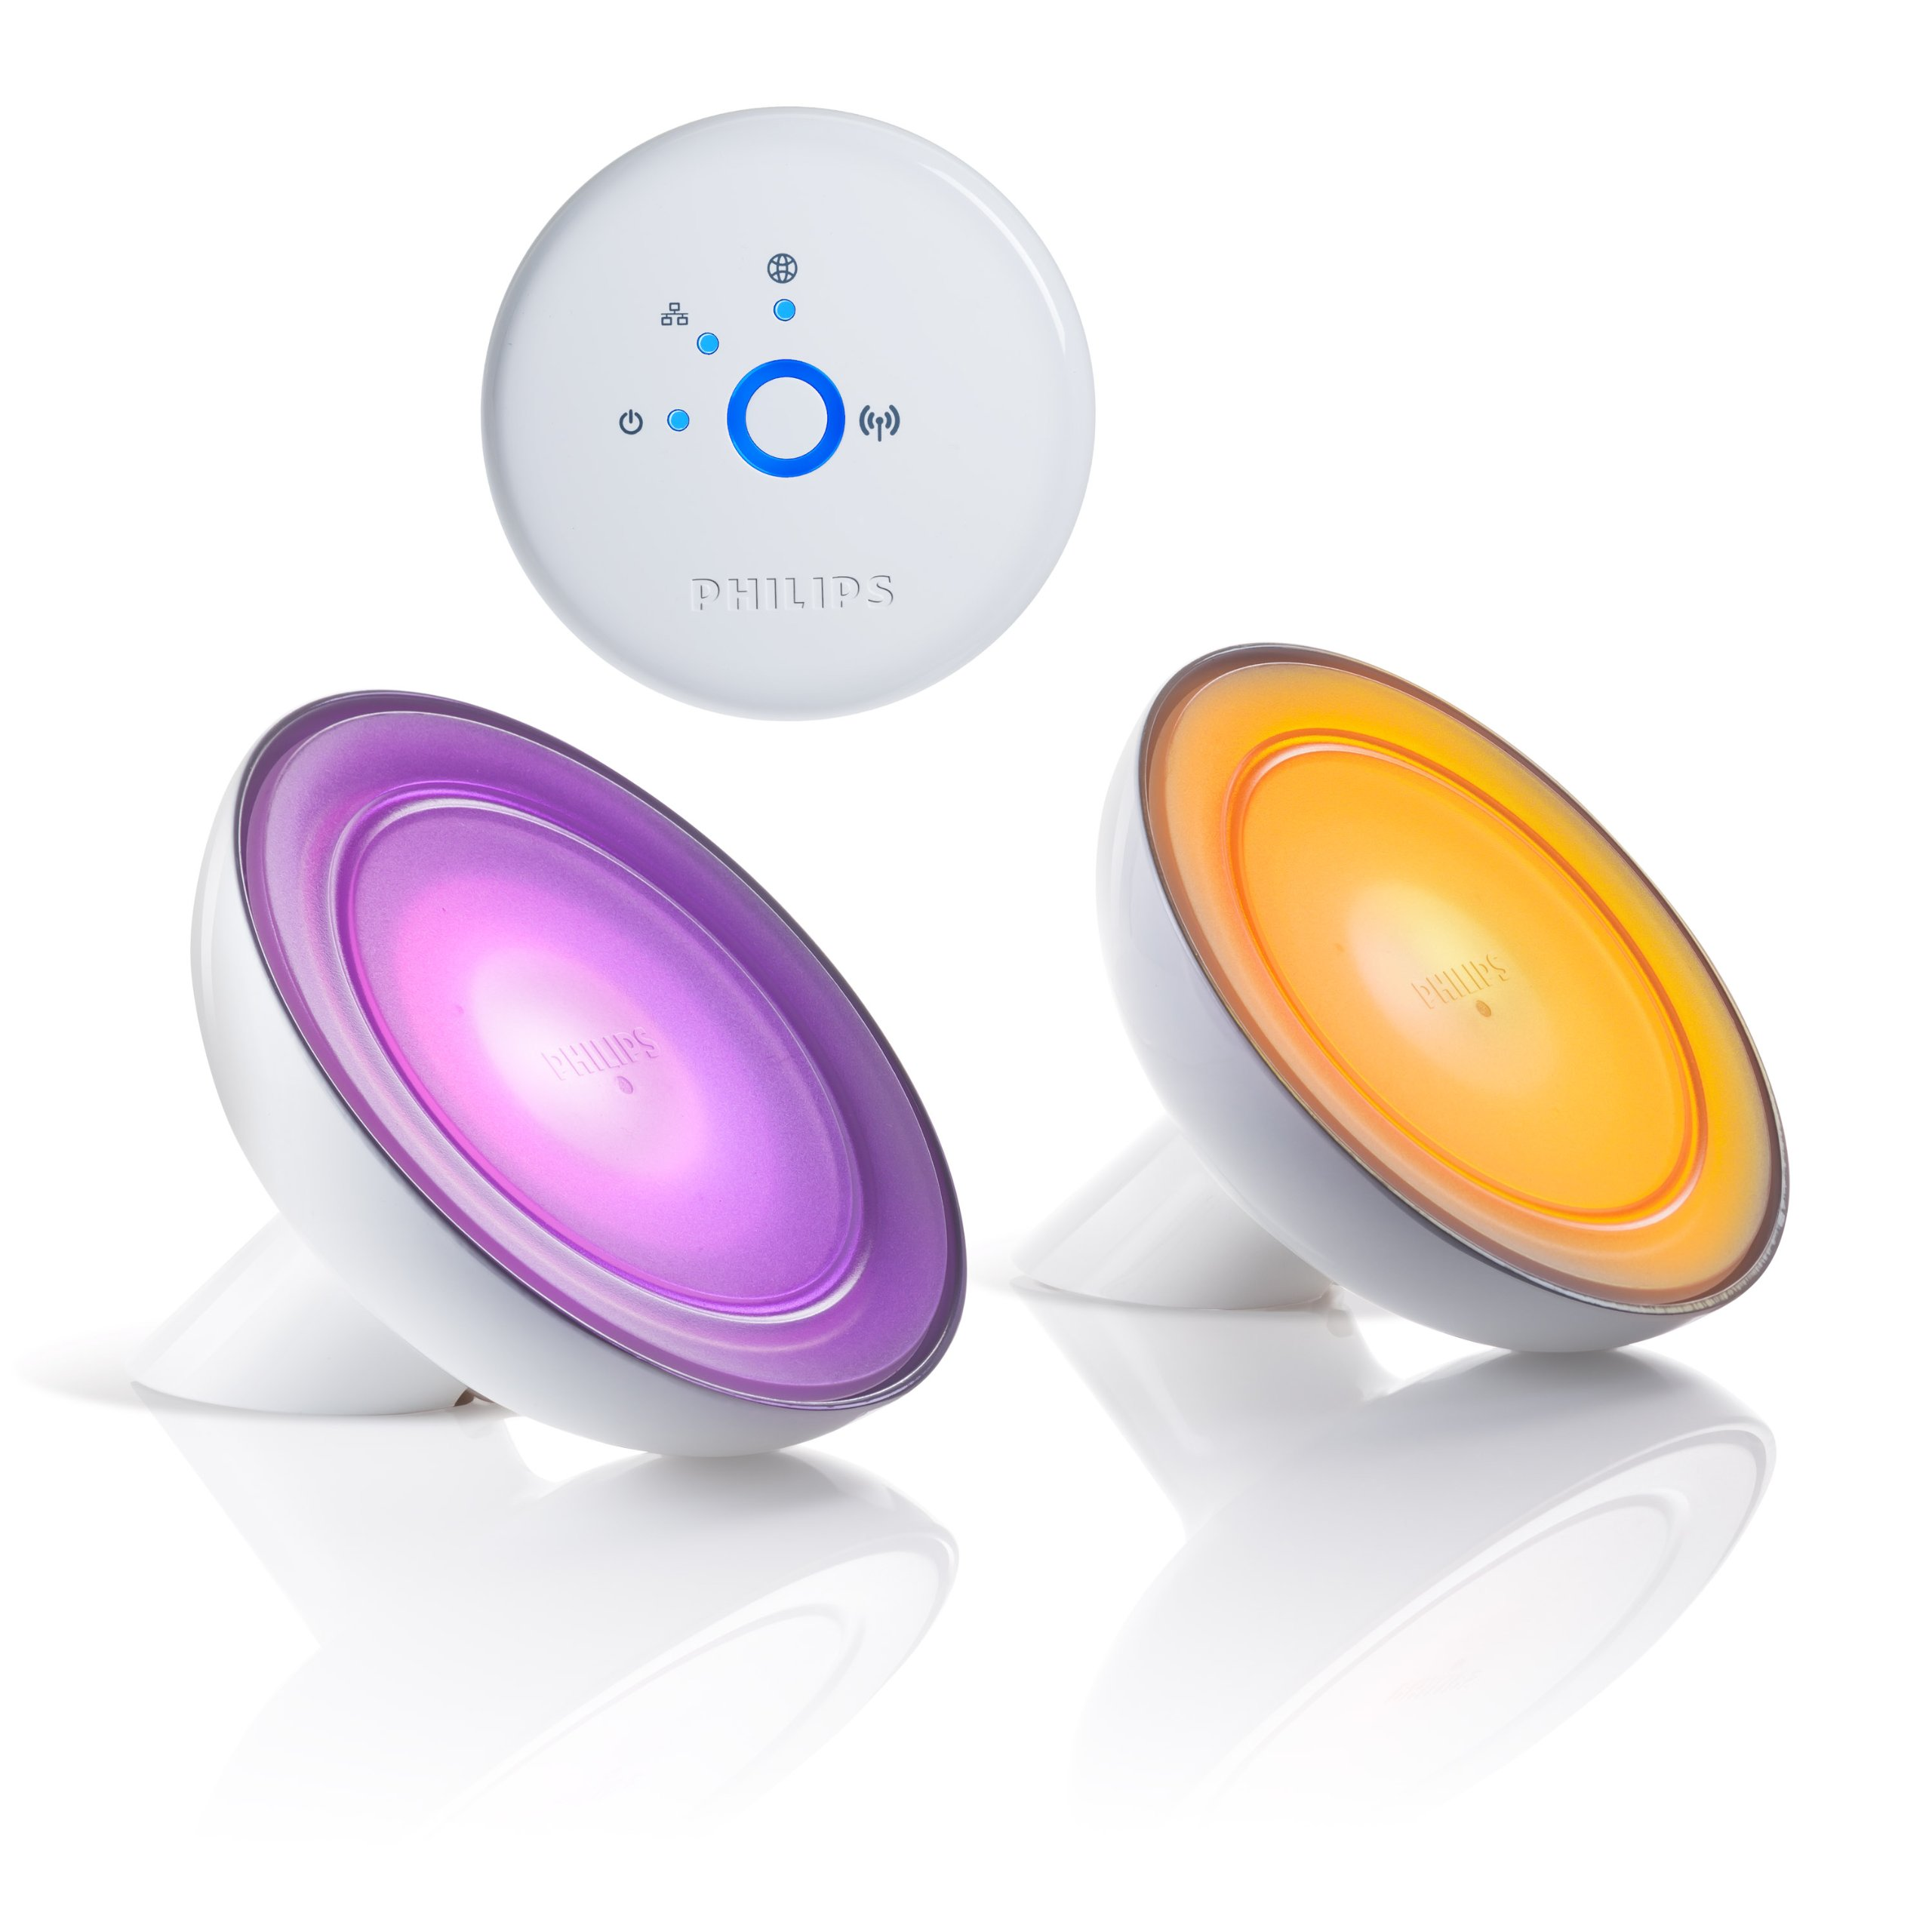 Philips Hue Bloom 2-Pack Dimmable LED Smart Table Lamp Starter Kit (Older Model, 2 Blooms and 1 Bridge, Compatible with Amazon Alexa, Apple HomeKit and Google Assistant) by Philips